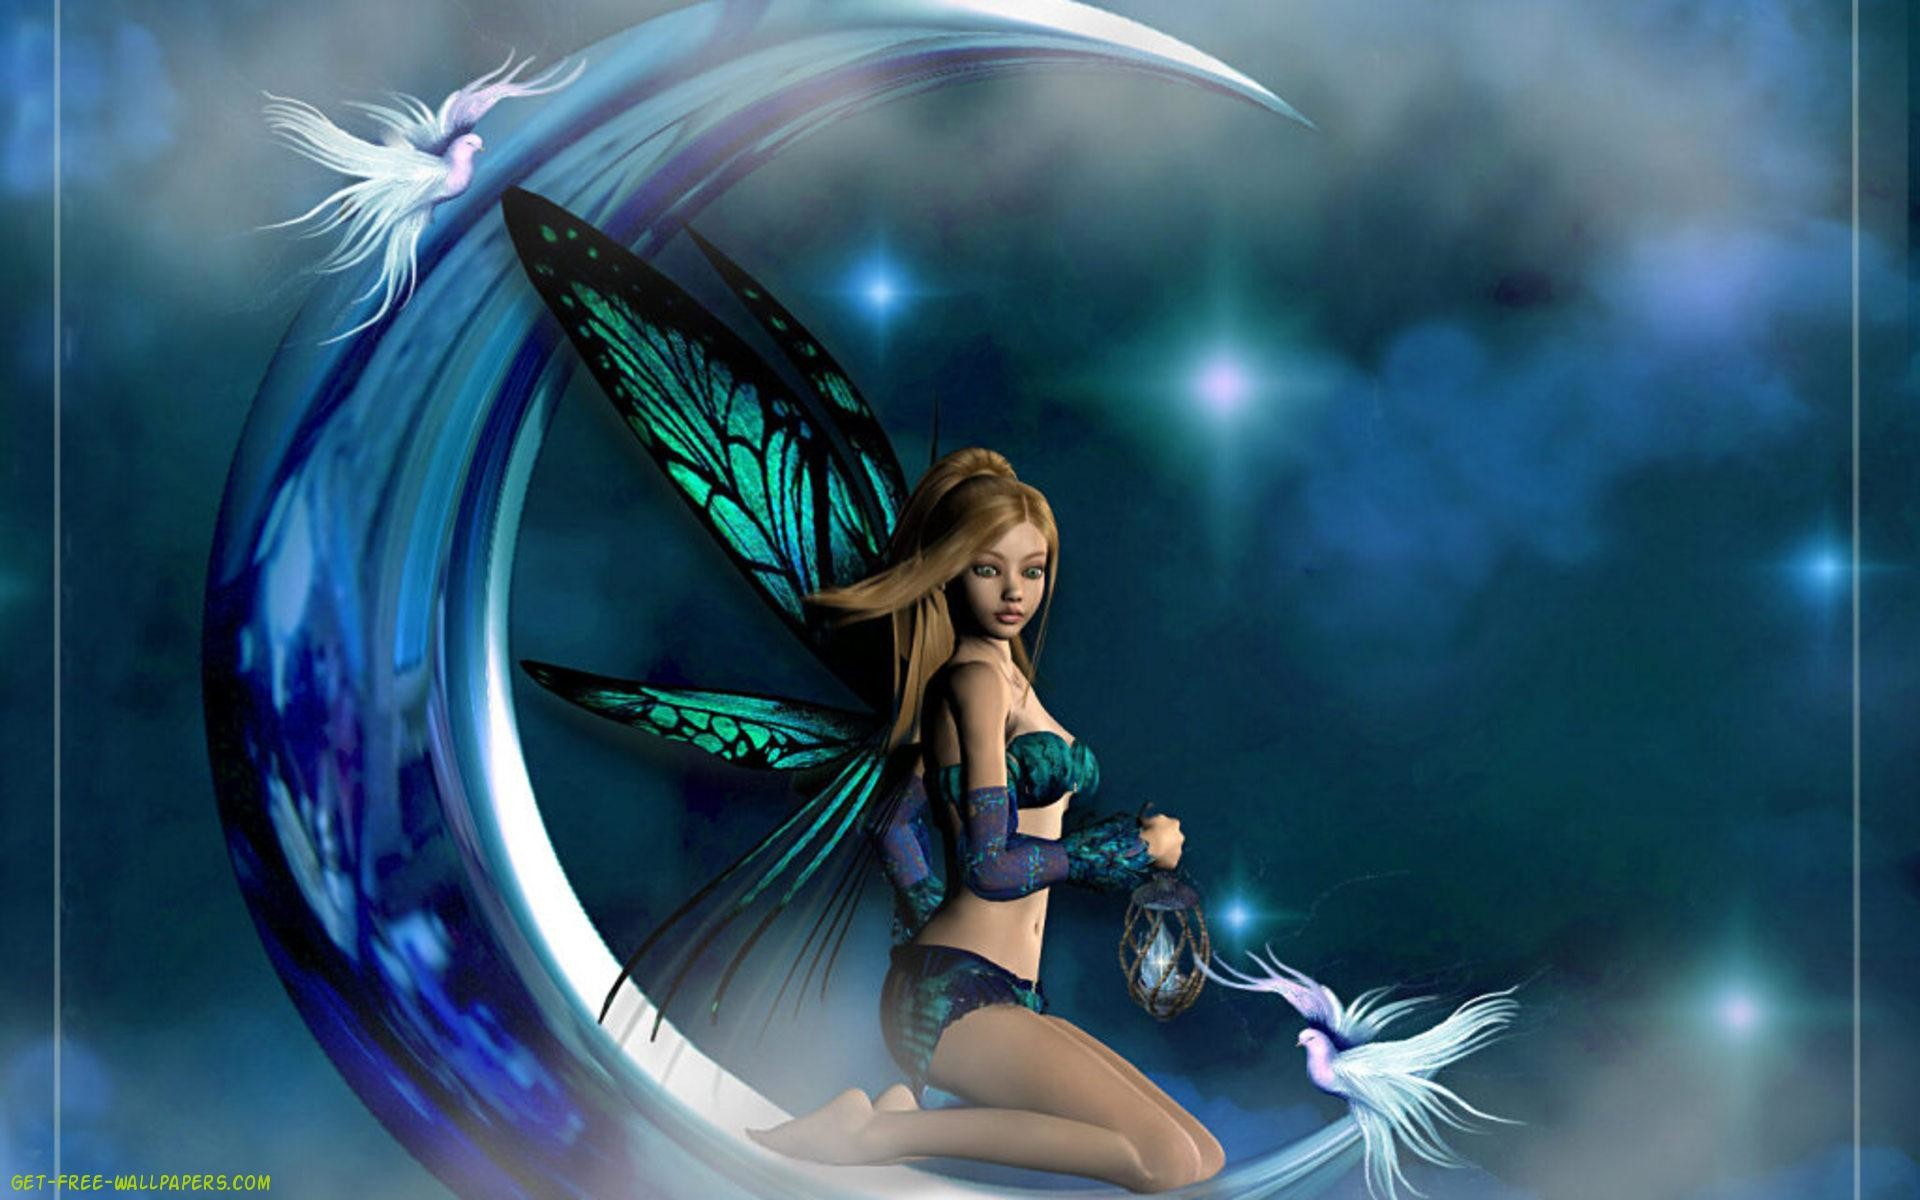 The moon fairy wallpaper.HD Wallpaper and background photos of Moon Fairy  Wallpaper for fans of Fairies images.